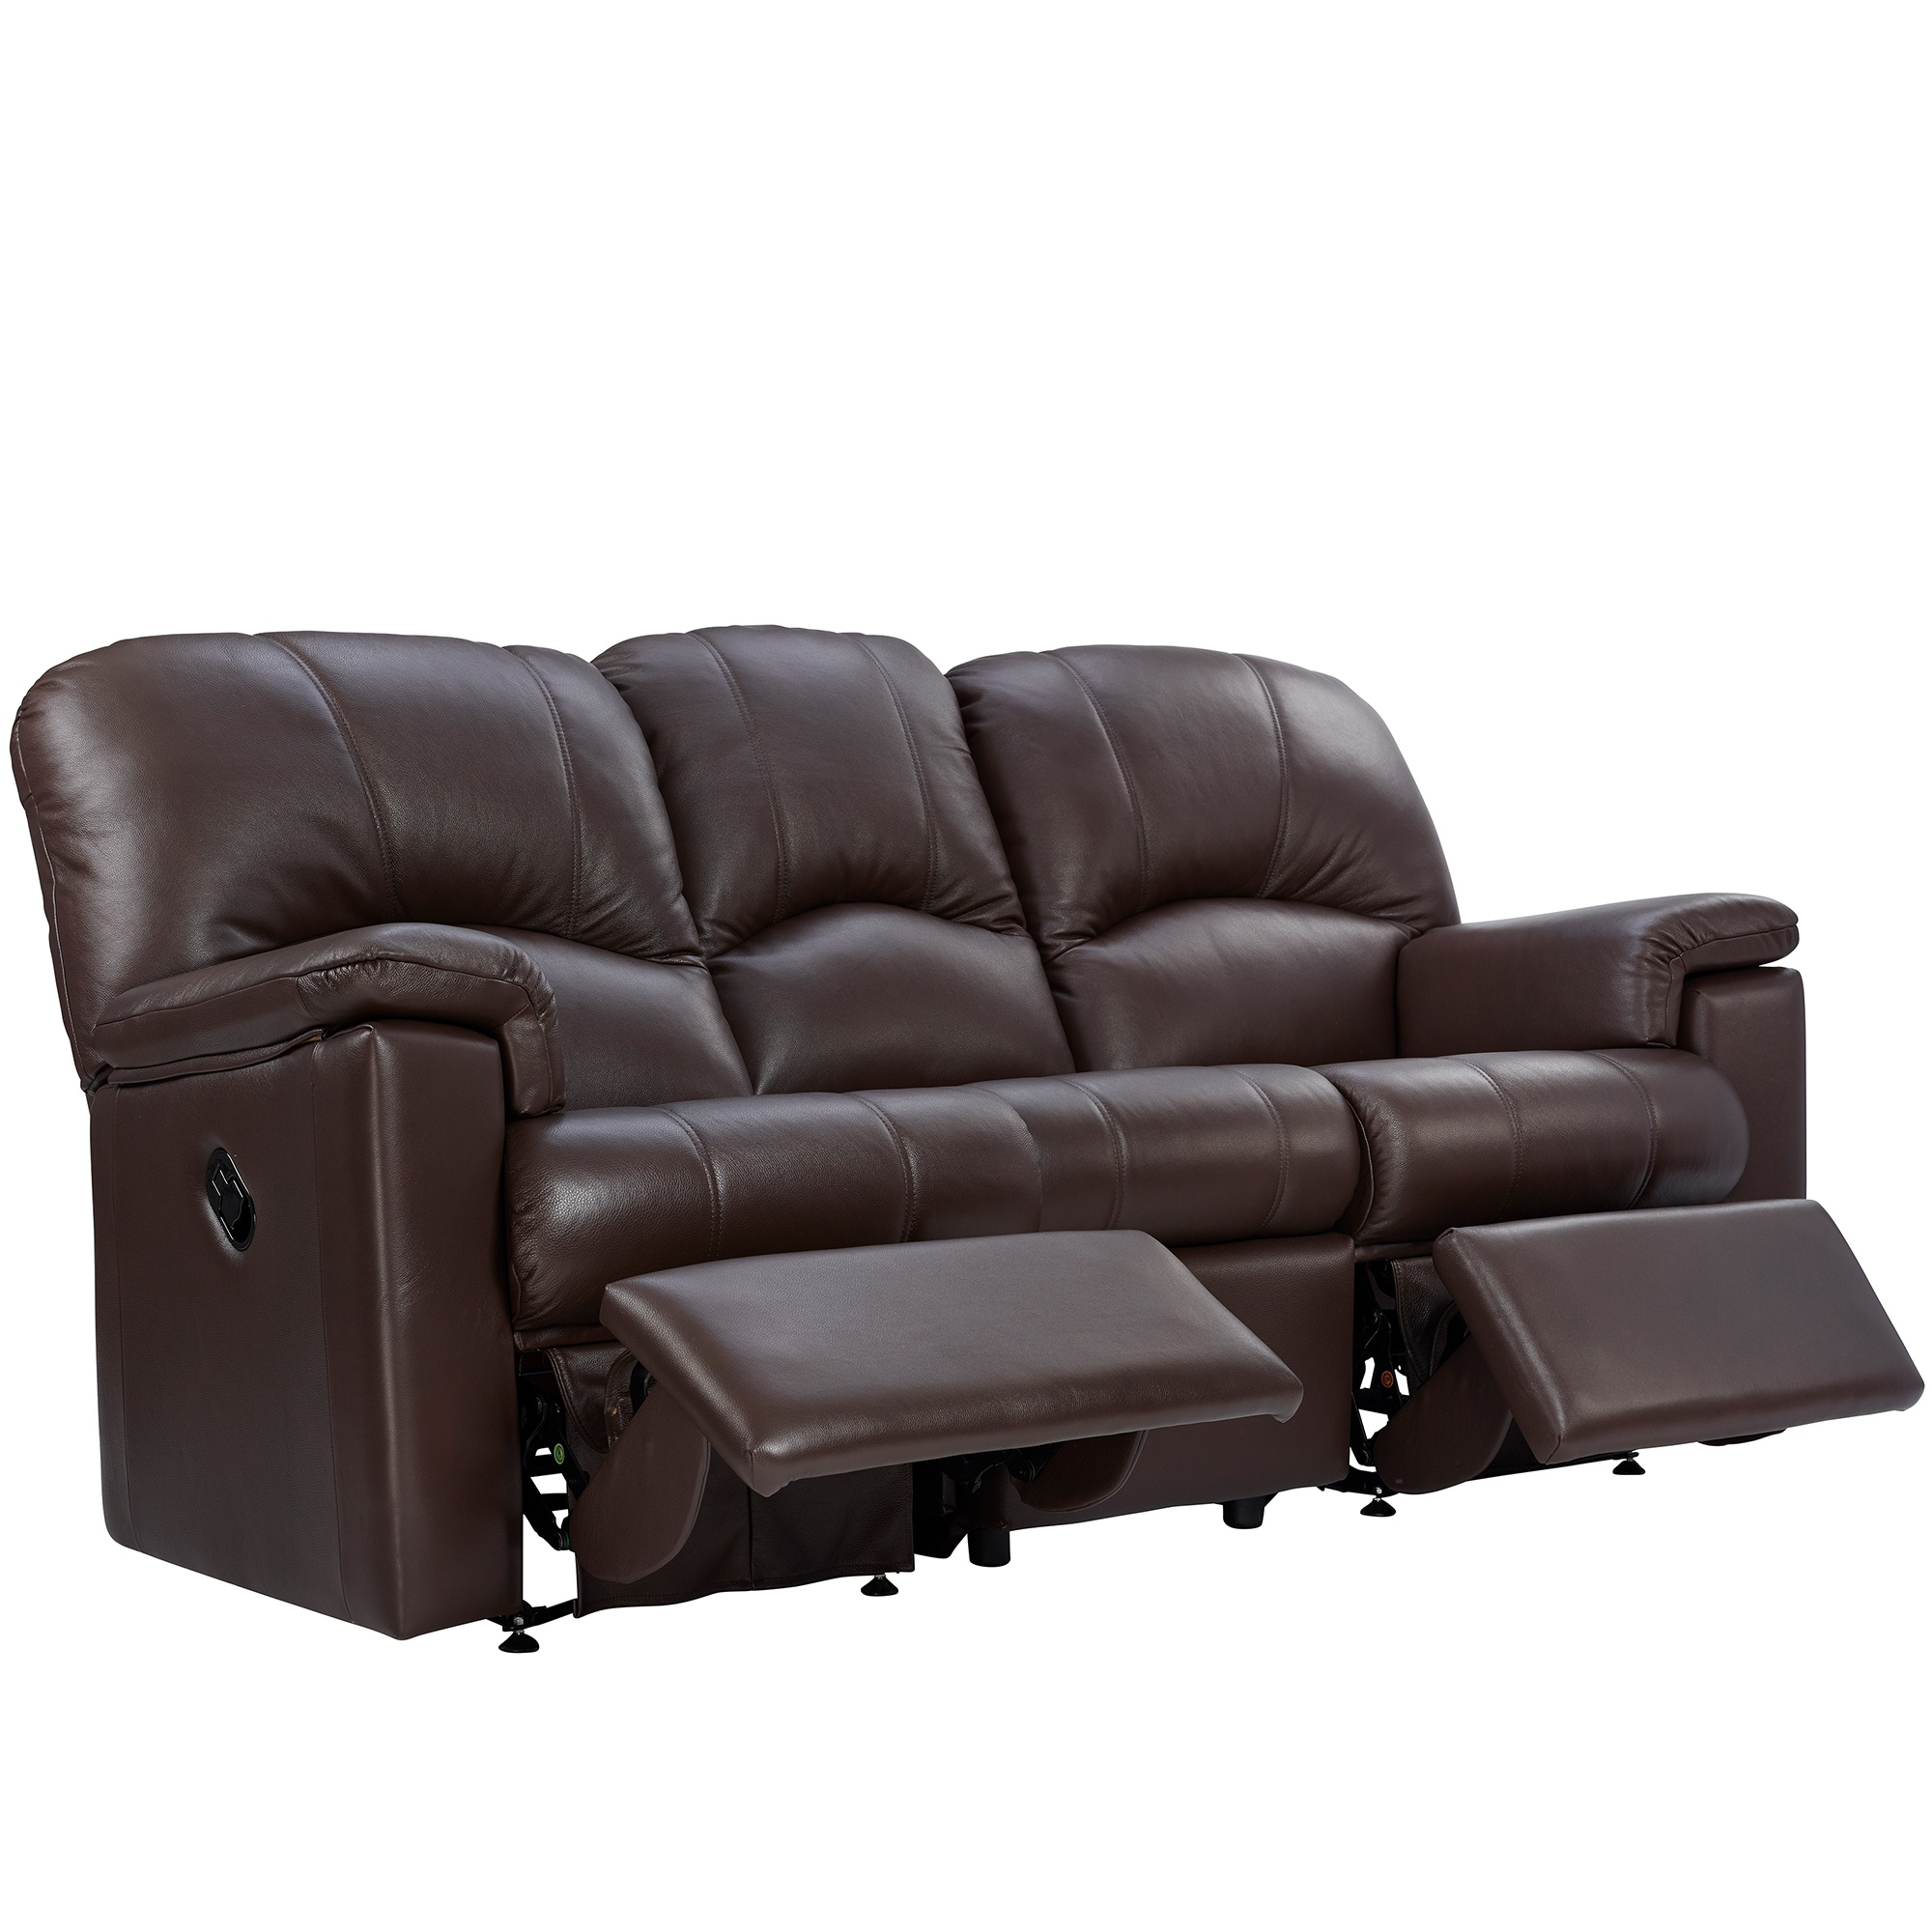 G Plan Chloe 3 Seater Double Recliner Sofa In Leather G Plan